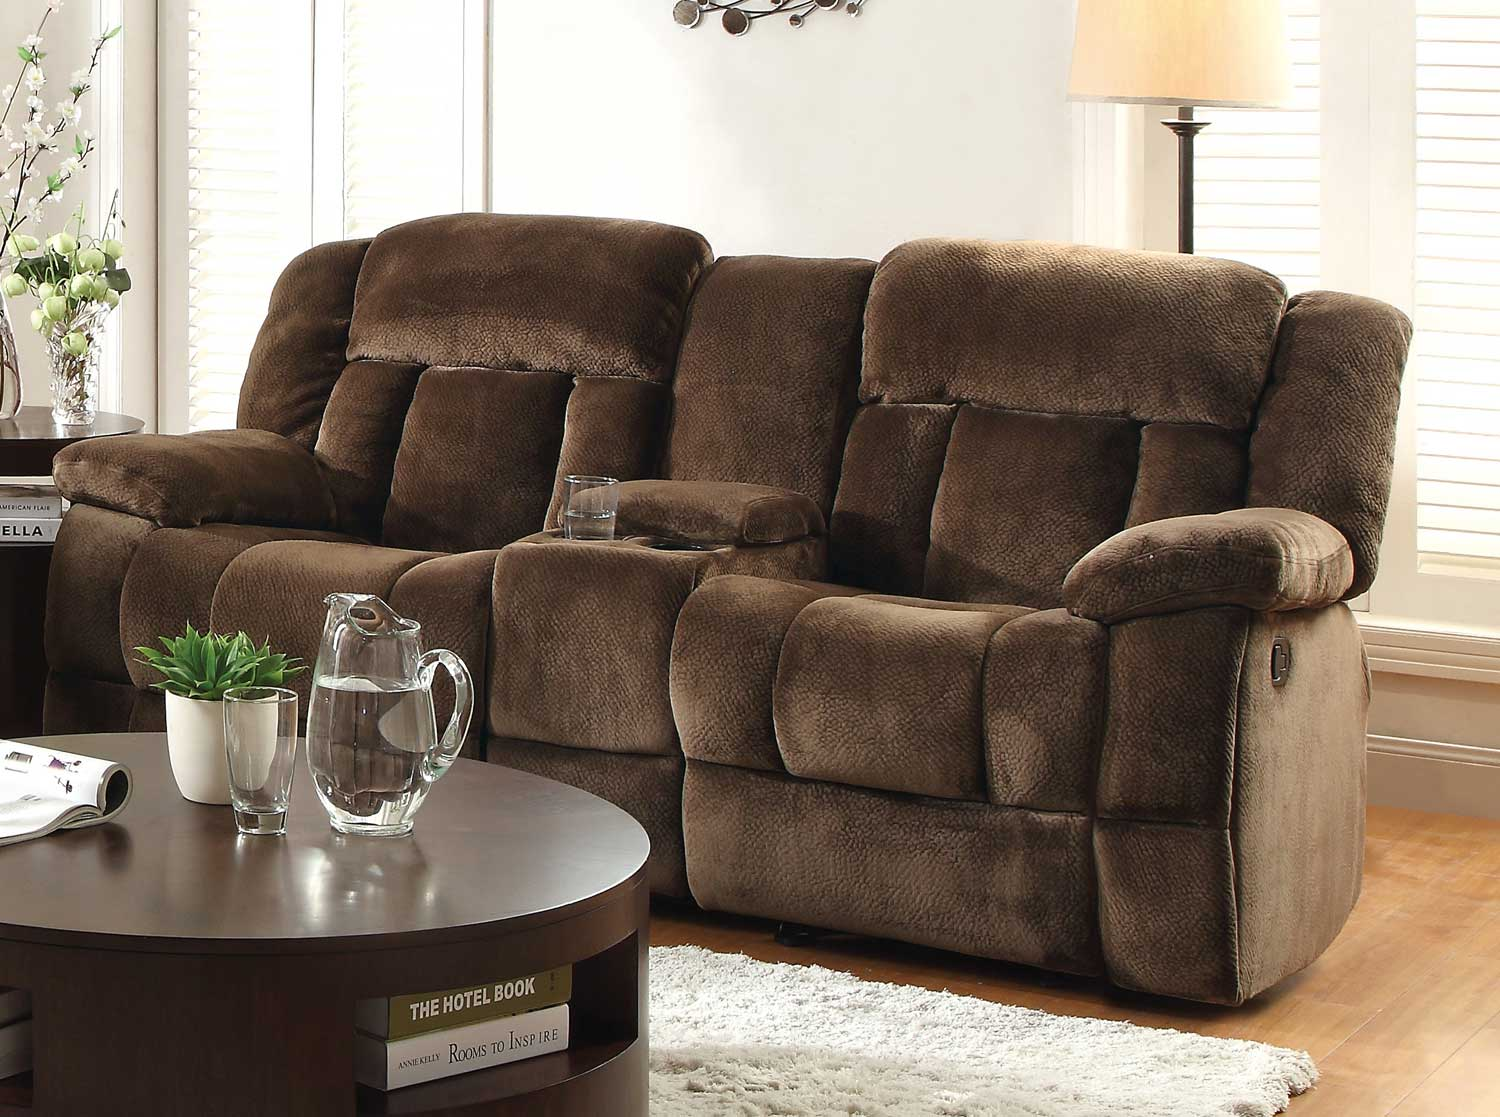 Homelegance Laurelton Double Glider Reclining Love Seat